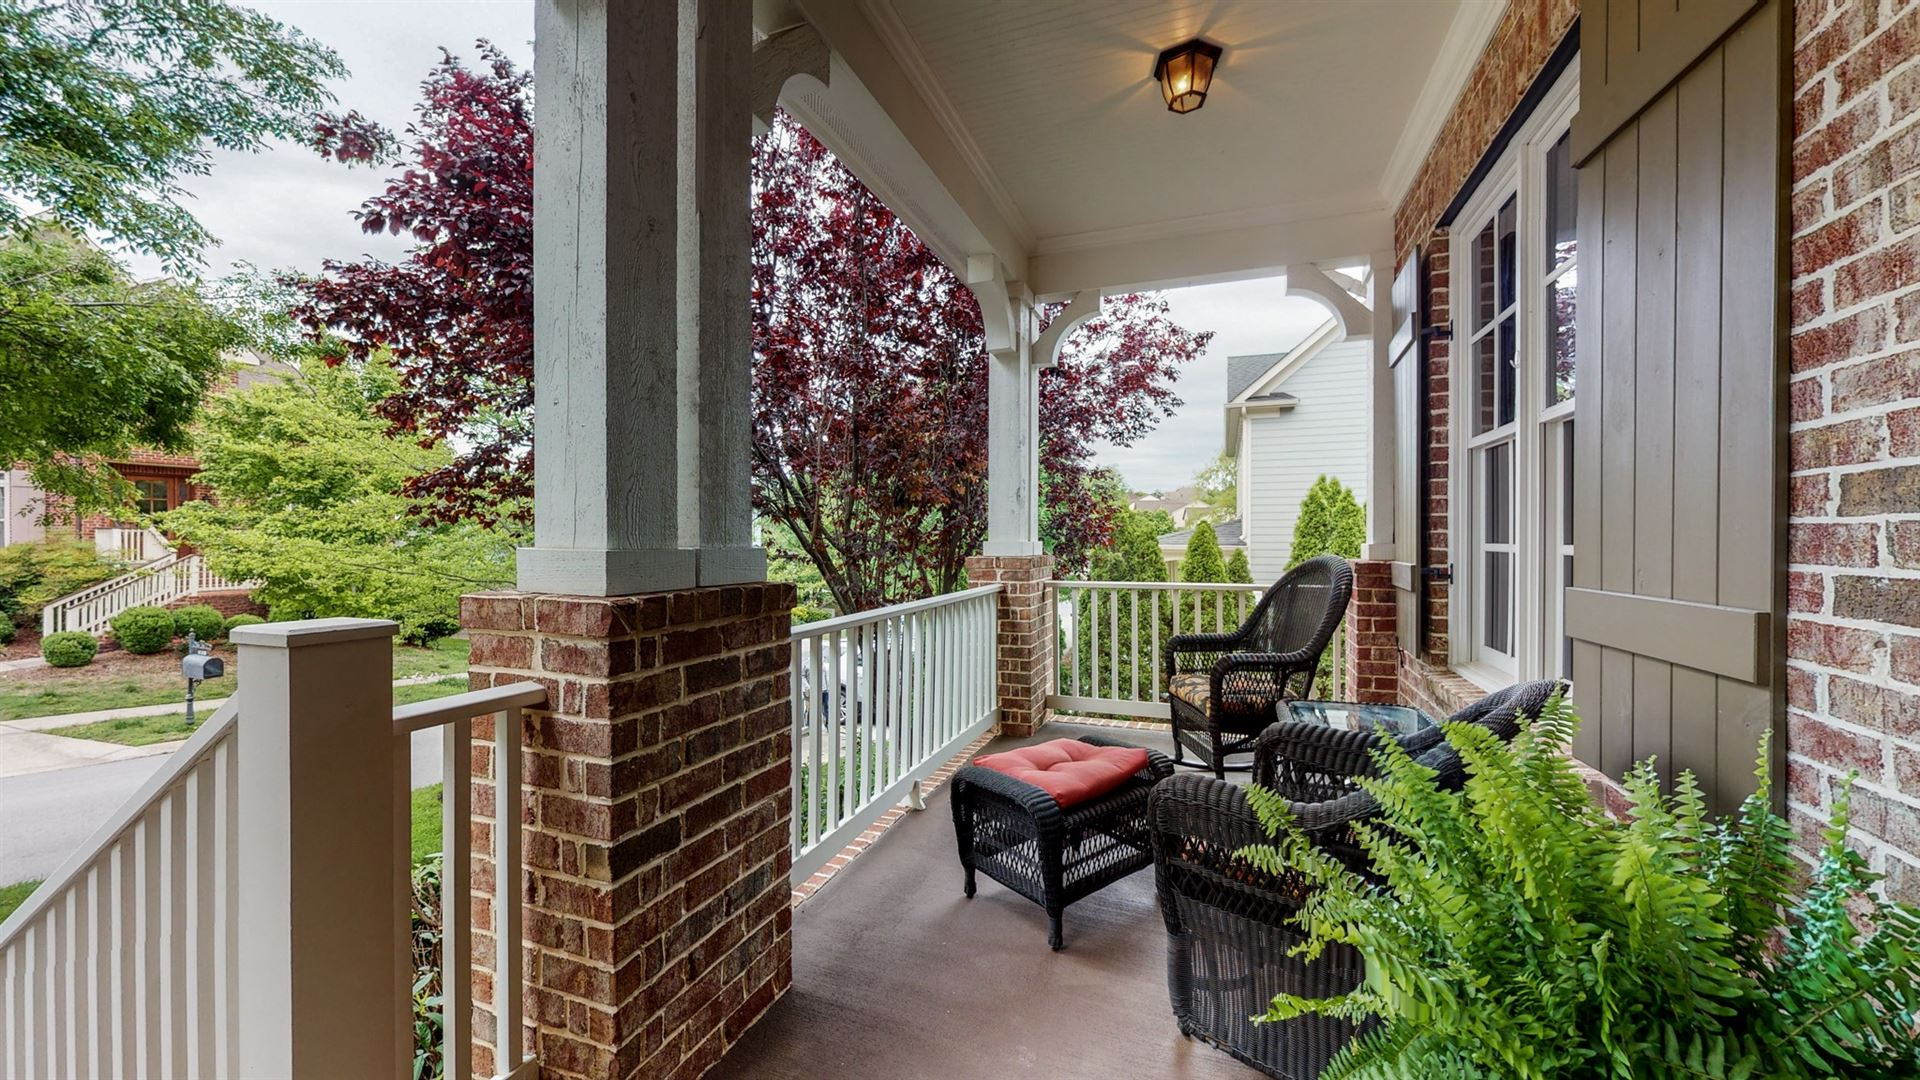 Photo of 437 Truman Rd, Franklin, TN 37064 (MLS # 2253061)